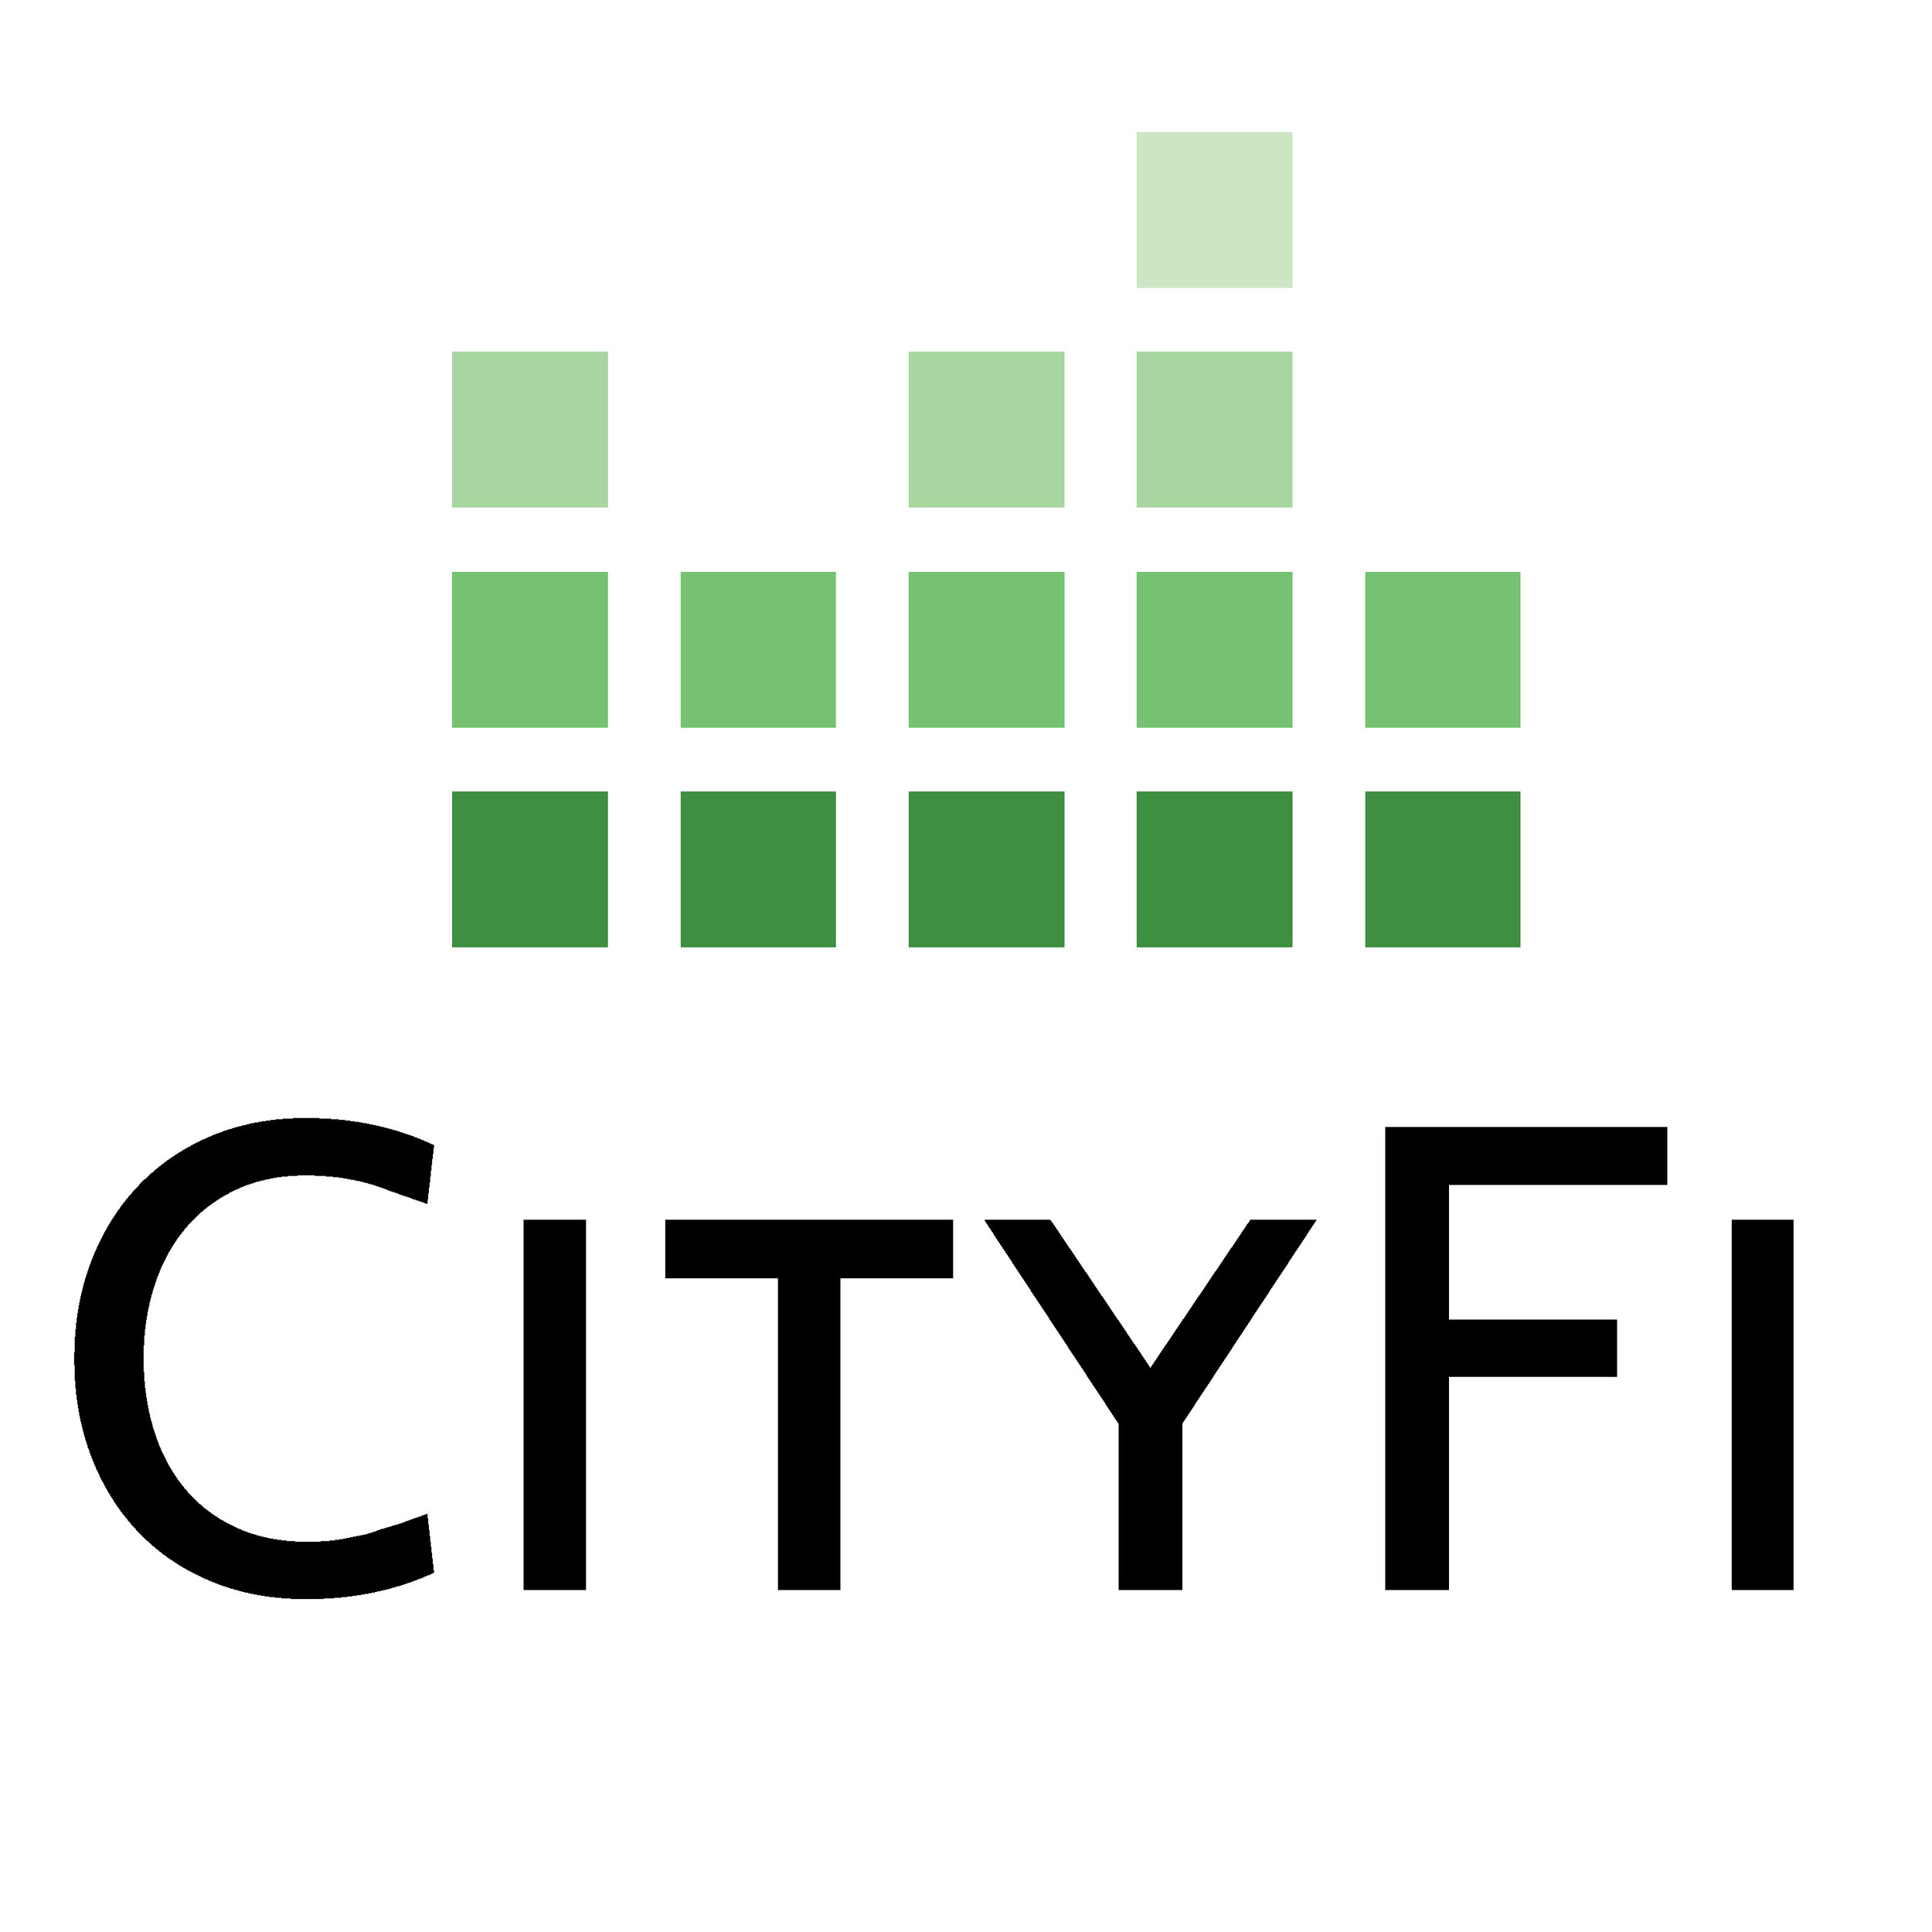 CityFi - CityFi is in the business of urban change management, with an eye towards facilitating empowering positive, sustainable impacts and economic returns. CityFi helps towns, cities, governments, start-ups, and companies understand and navigate the increasingly complex urban landscape, and work together to make positive change, fast. Working by inspiring community action, advising organizational leadership, developing strategic roadmaps, and facilitating public-private partnerships, CityFi integrates public policy, urban design, economic development, capacity building, and civic innovation to achieve measurable outcomes to create more livable, sustainable and efficient communities.www.cityfi.co